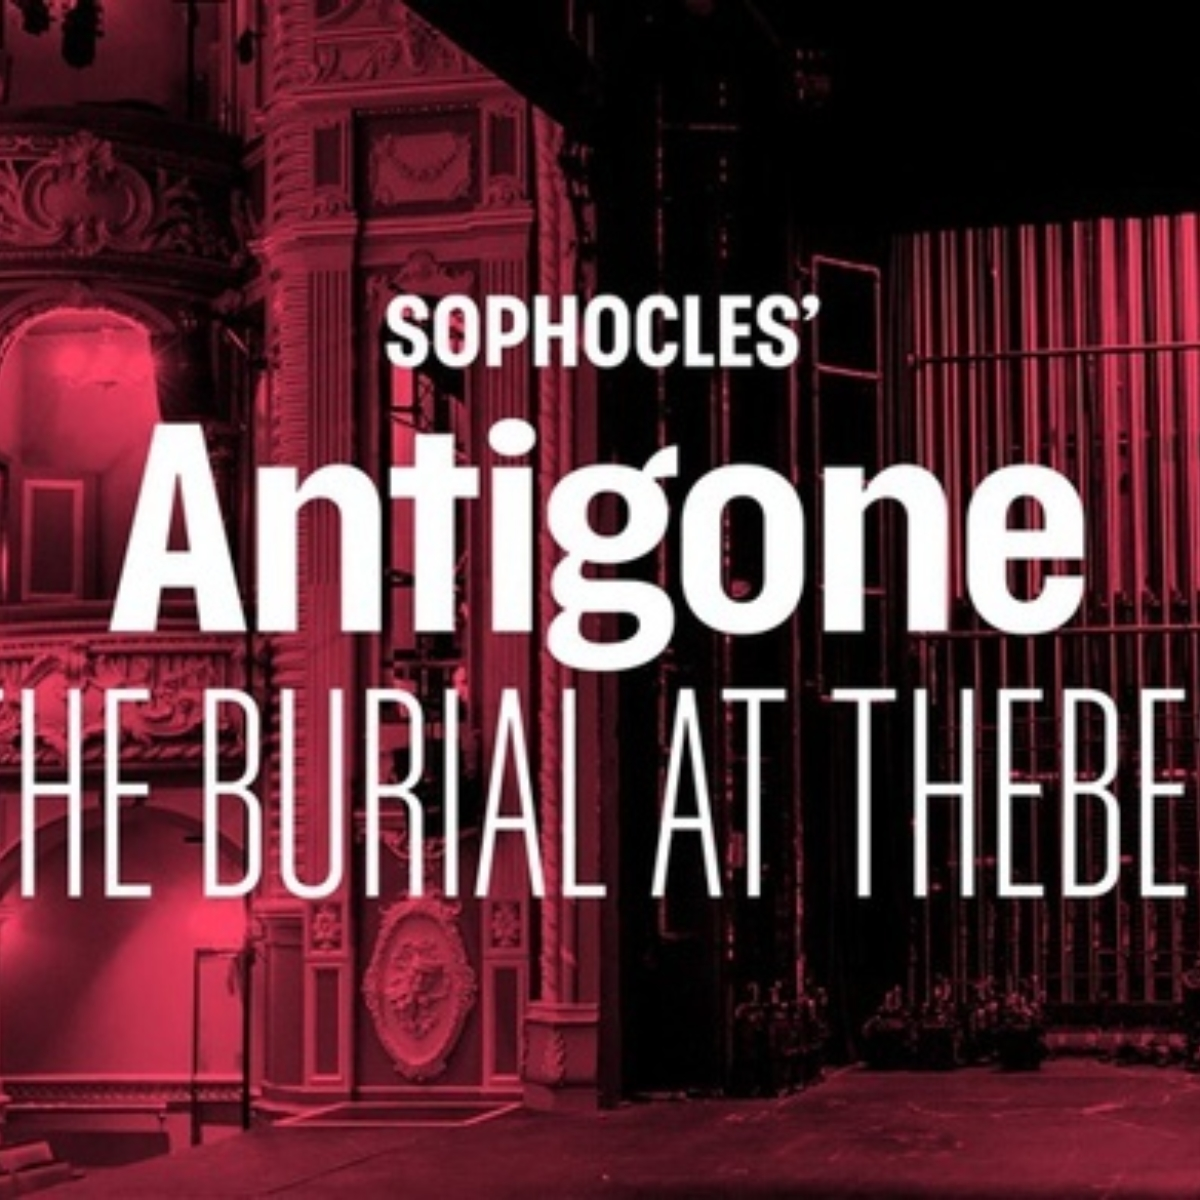 Sophocles' Antigone: The Burial At Thebes Images